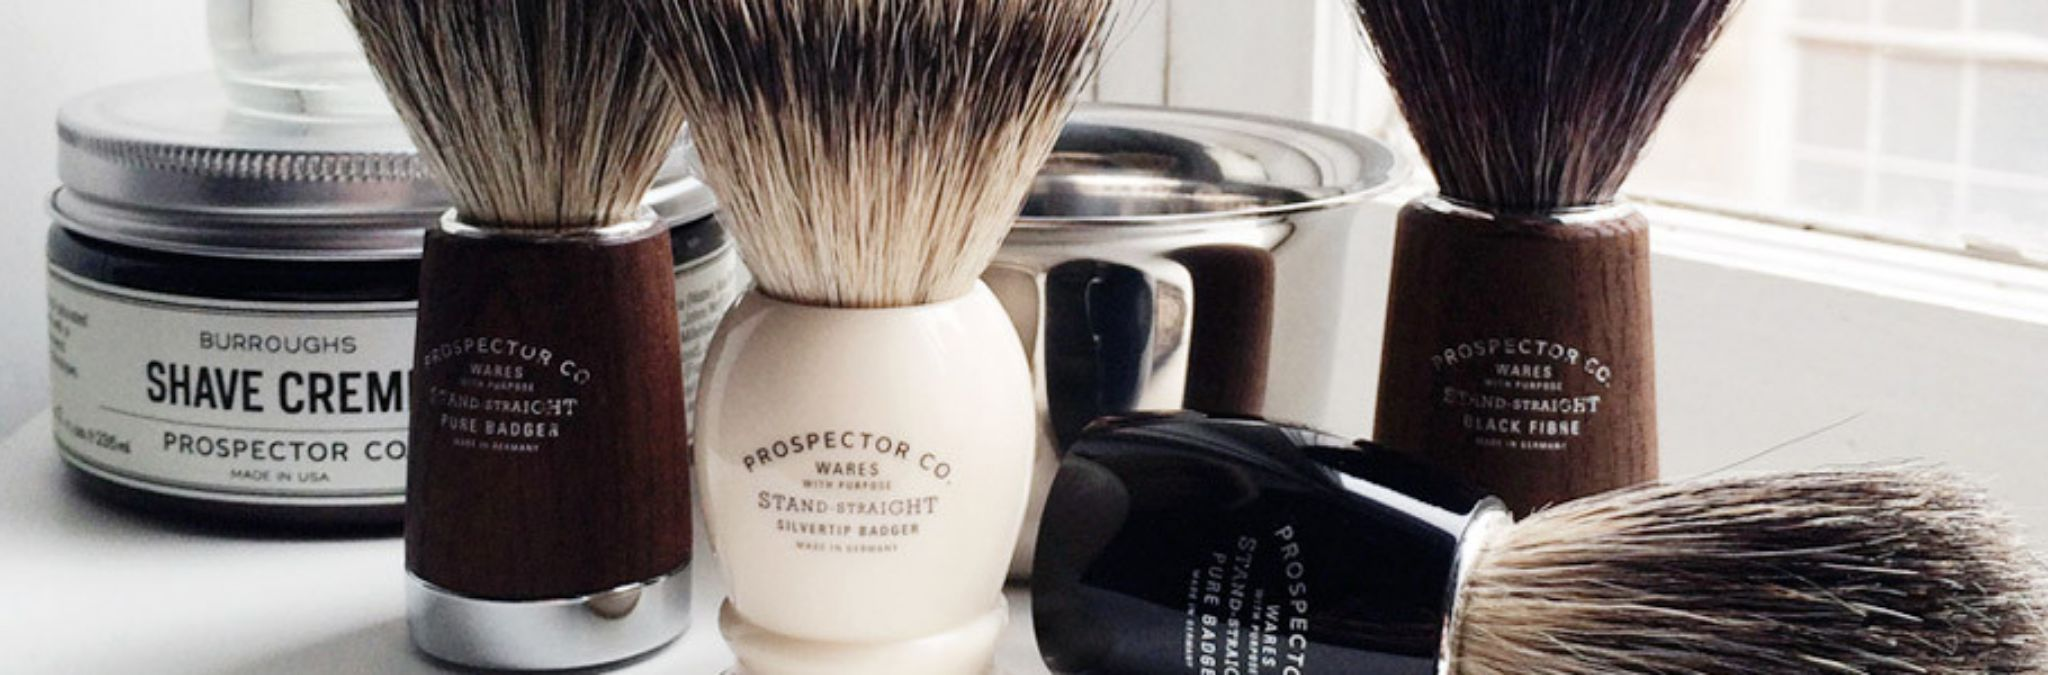 Prospector Co shaving products